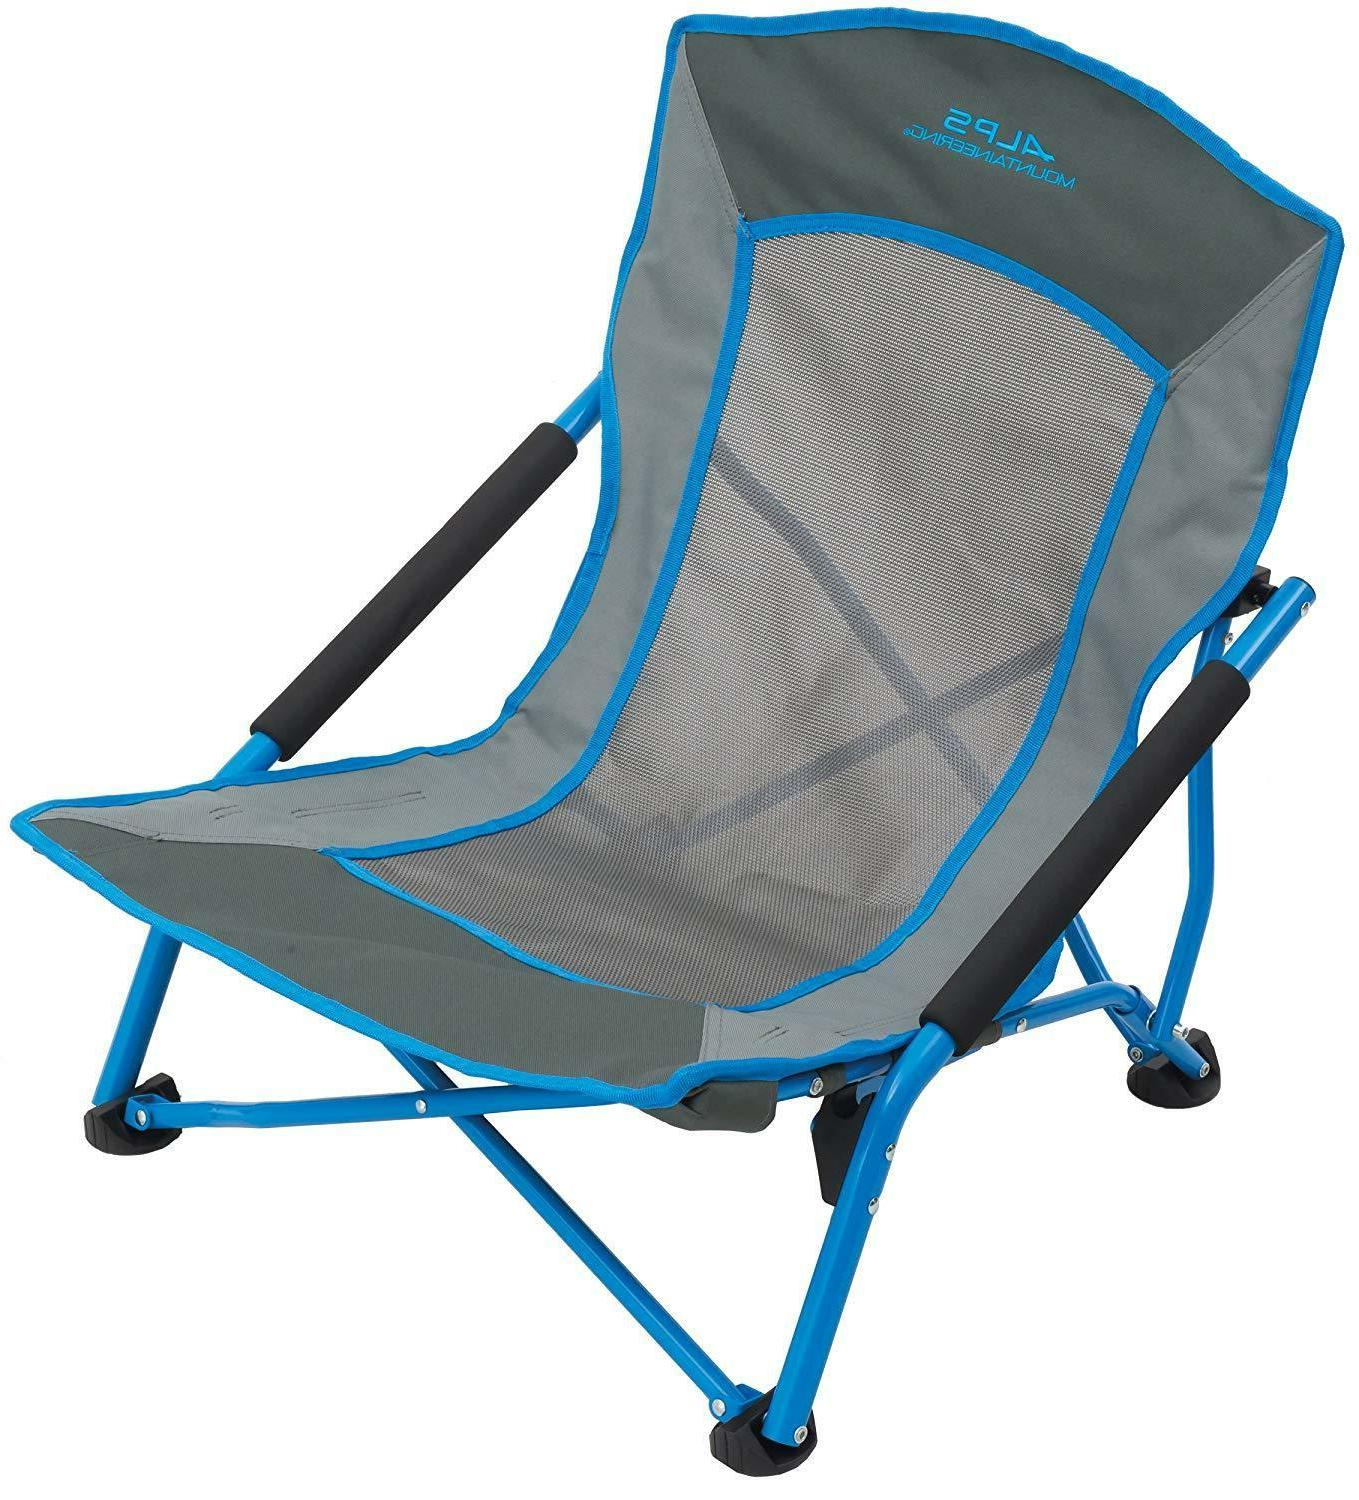 rendezvous chair camping outdoor sporting blue gray